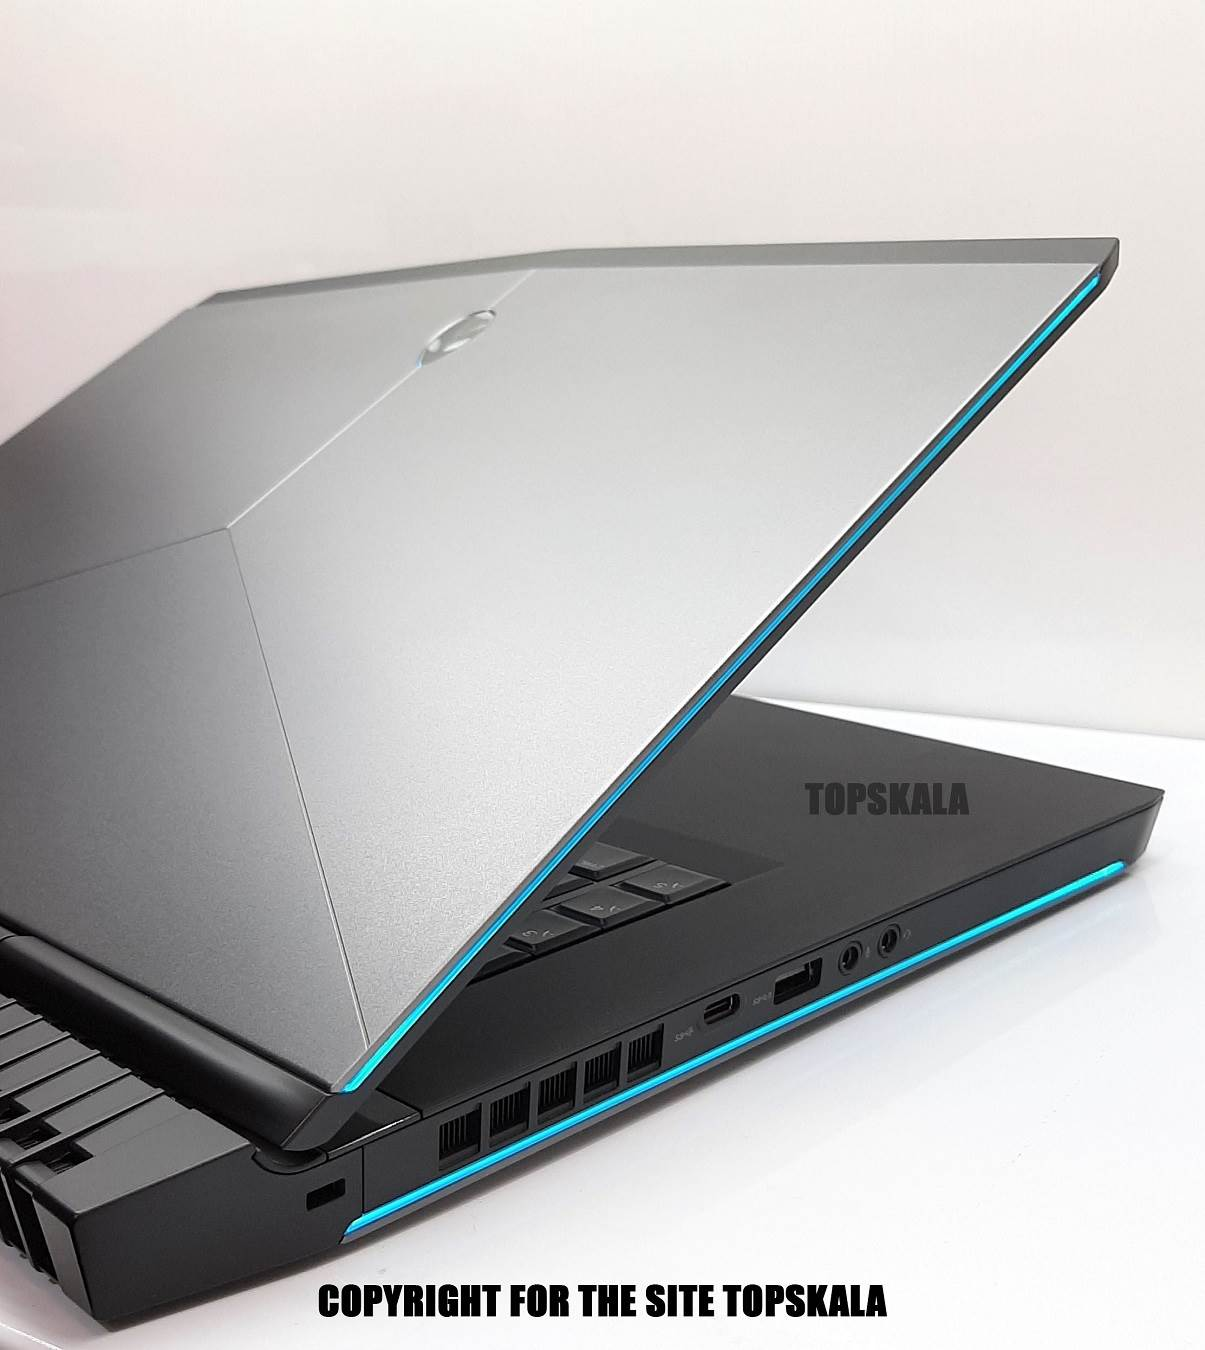 لپ تاپ استوک دل مدل Dell ALIENWARE R4 15 با مشخصات i7-8th-32GB-256GB-SSD-1TB-HDD-8GB-nvidia-GTX-1070